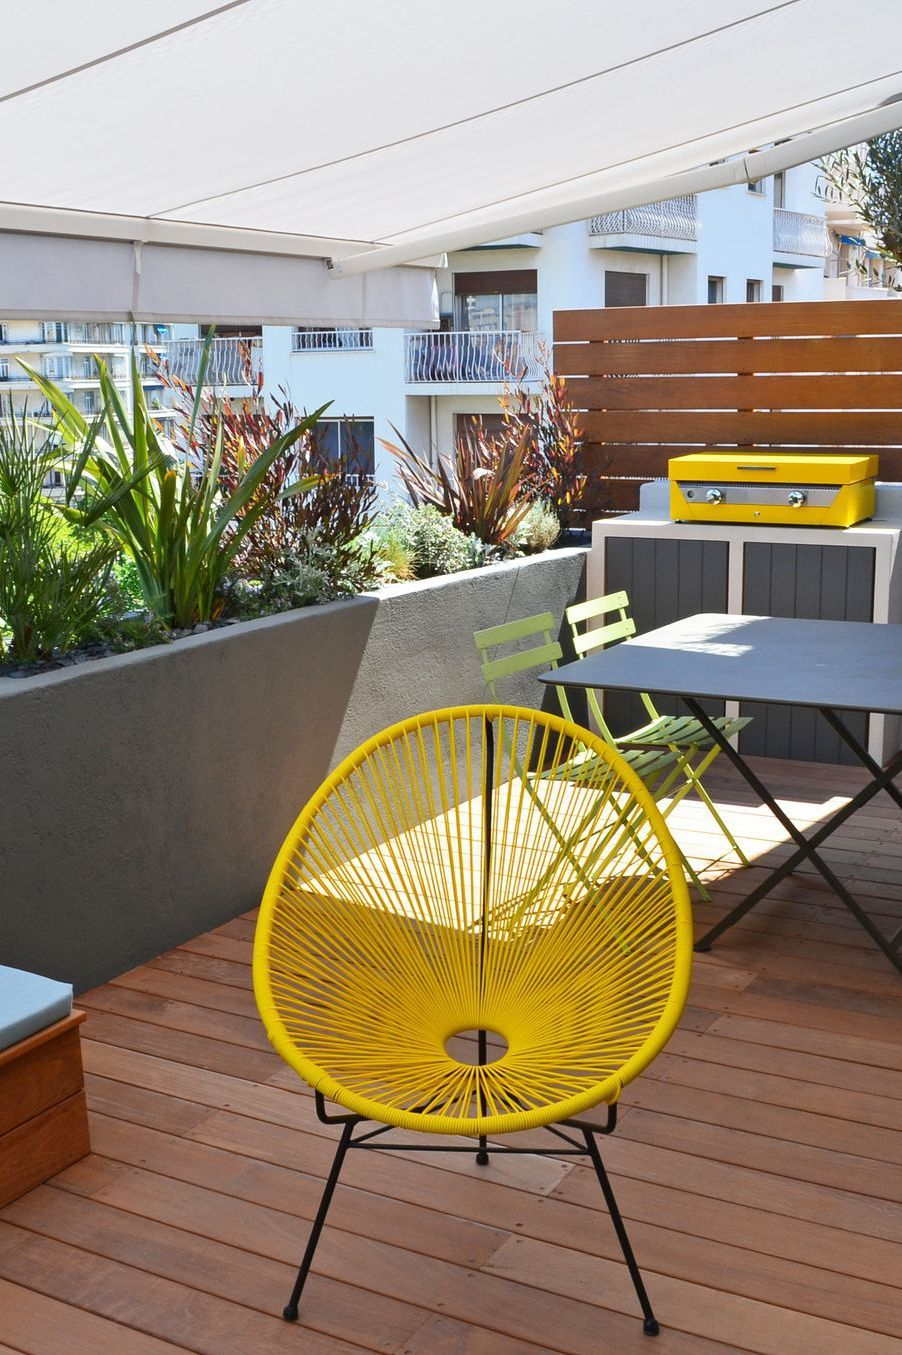 Aménager Une Grande Terrasse : 10 Solutions Possibles ... serapportantà Amenager Une Grande Terrasse